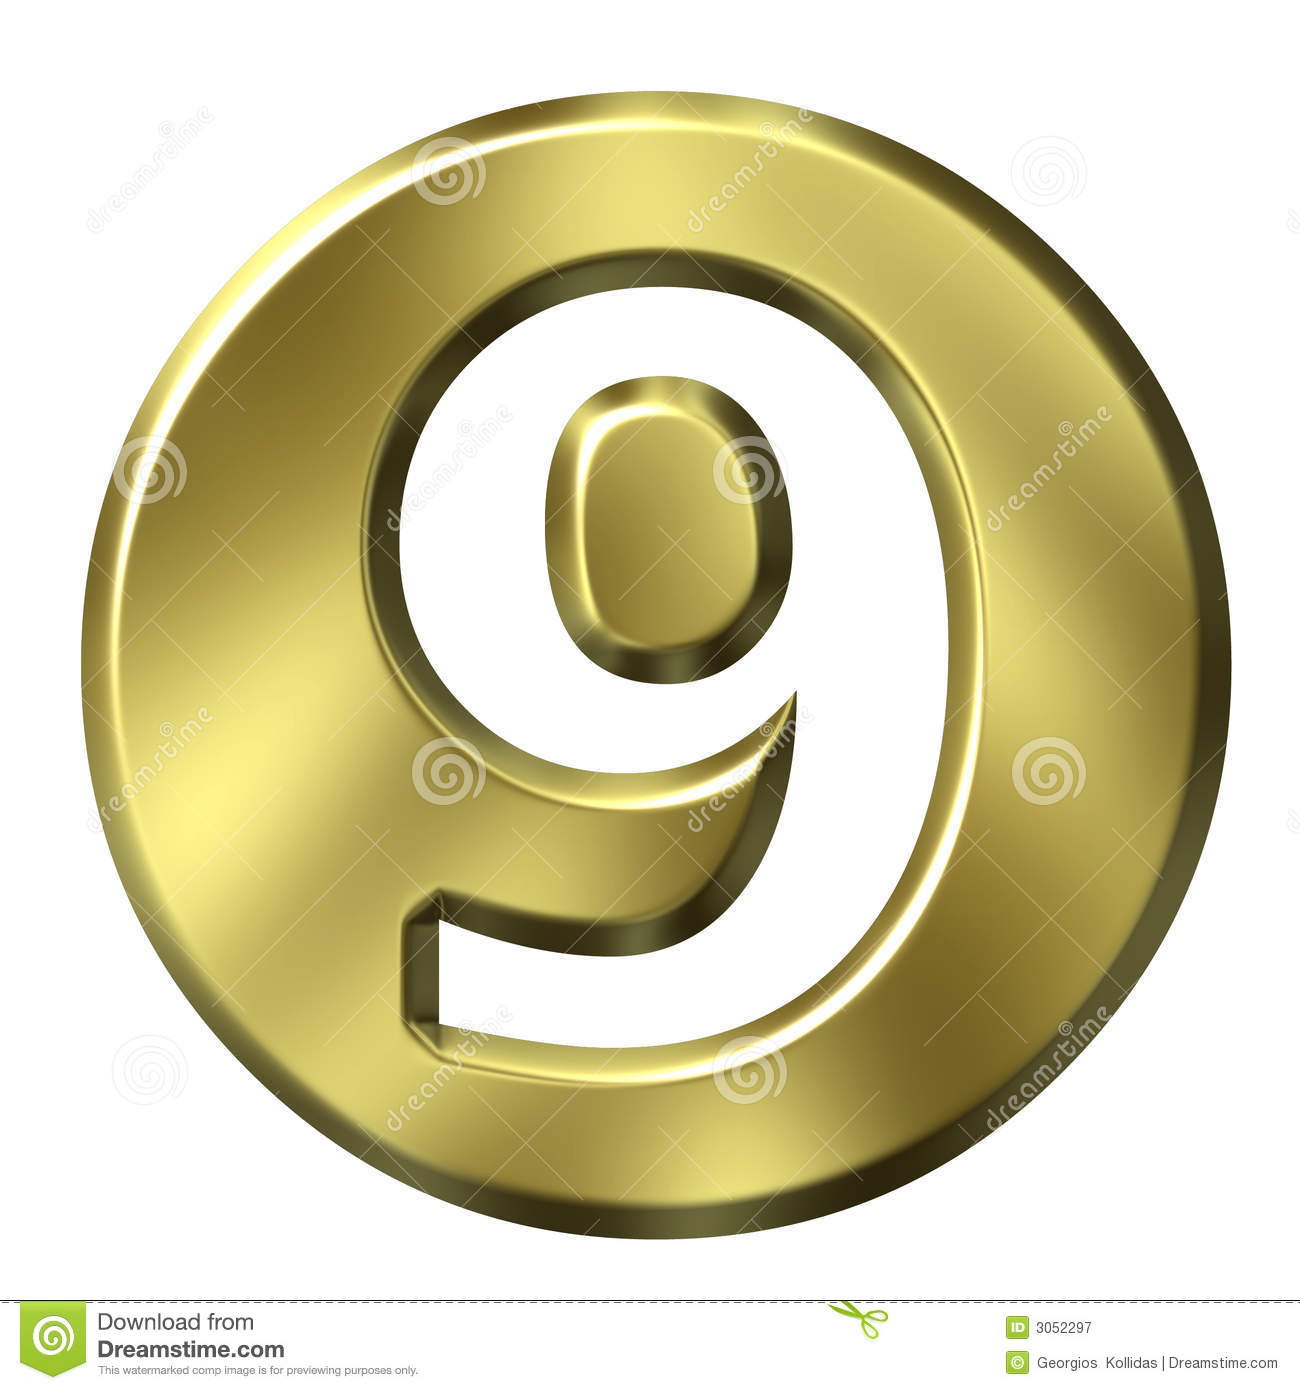 golden framed number 9 stock illustration  illustration of icon